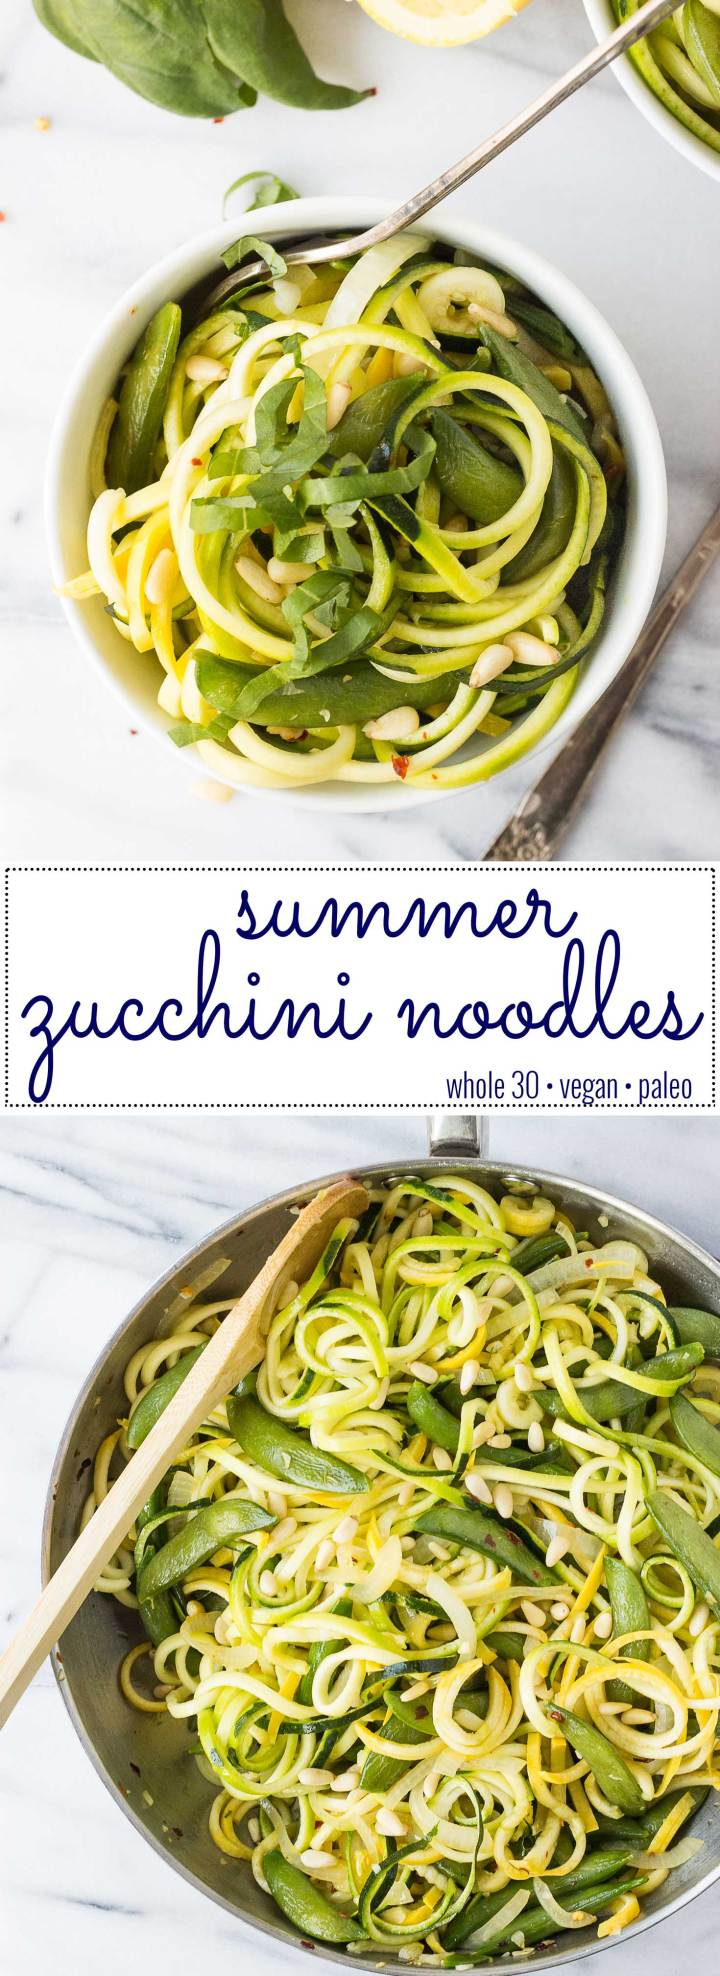 Summer Zucchini Noodles - a refreshing and healthy recipe that's perfect as a side or meal! // Fork in the Kitchen